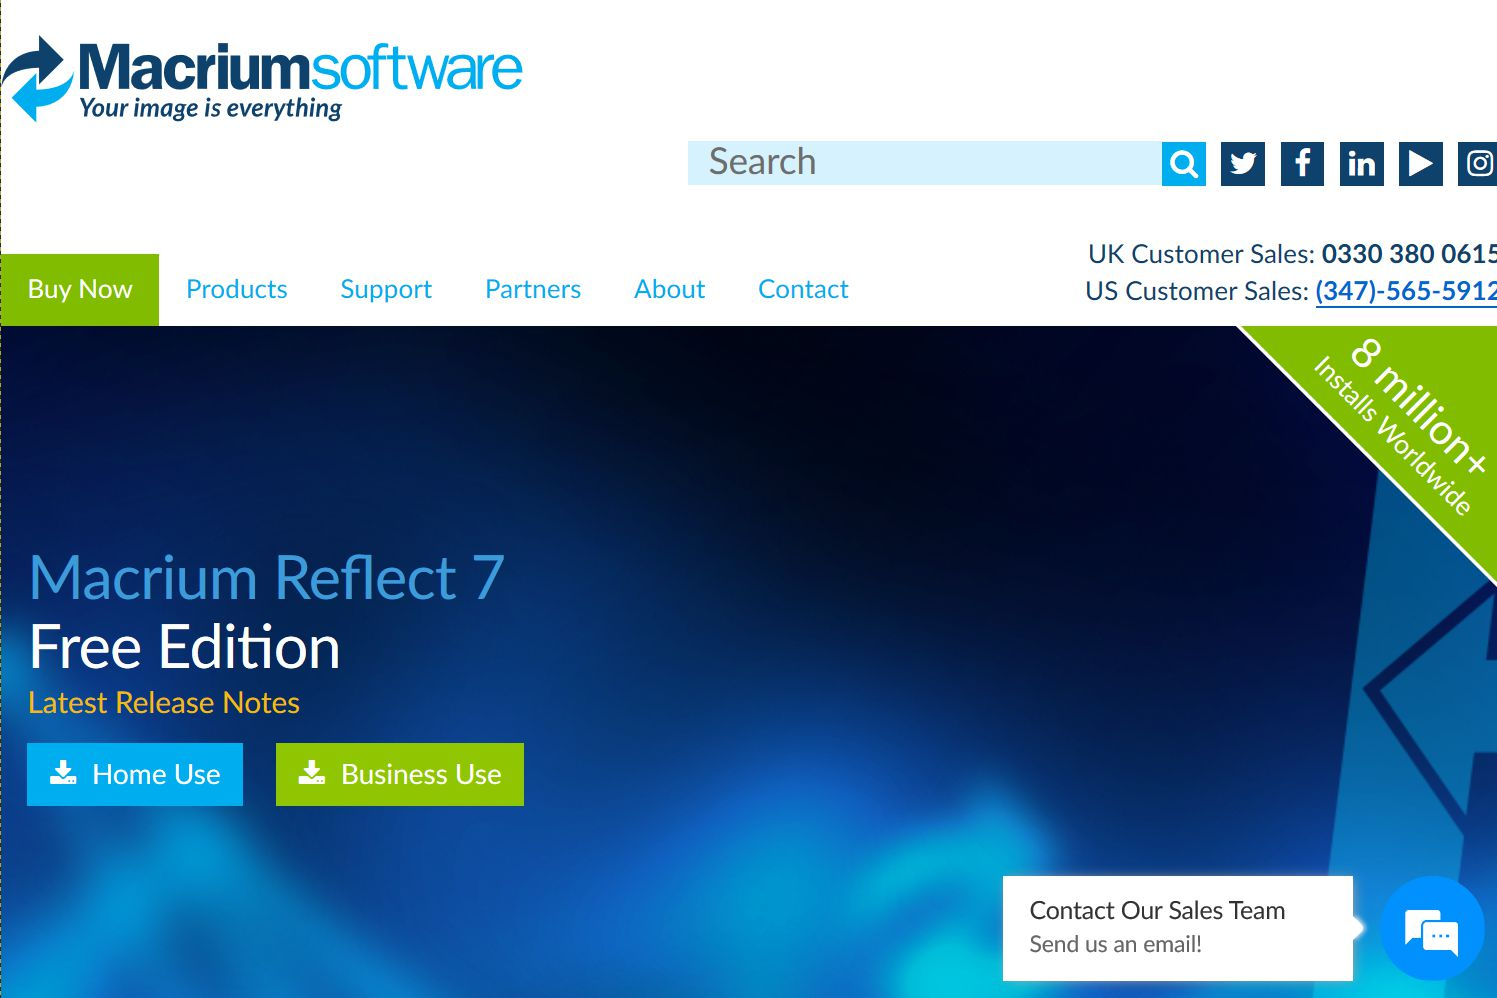 Macrium Reflect 7 Free Edition Download Page